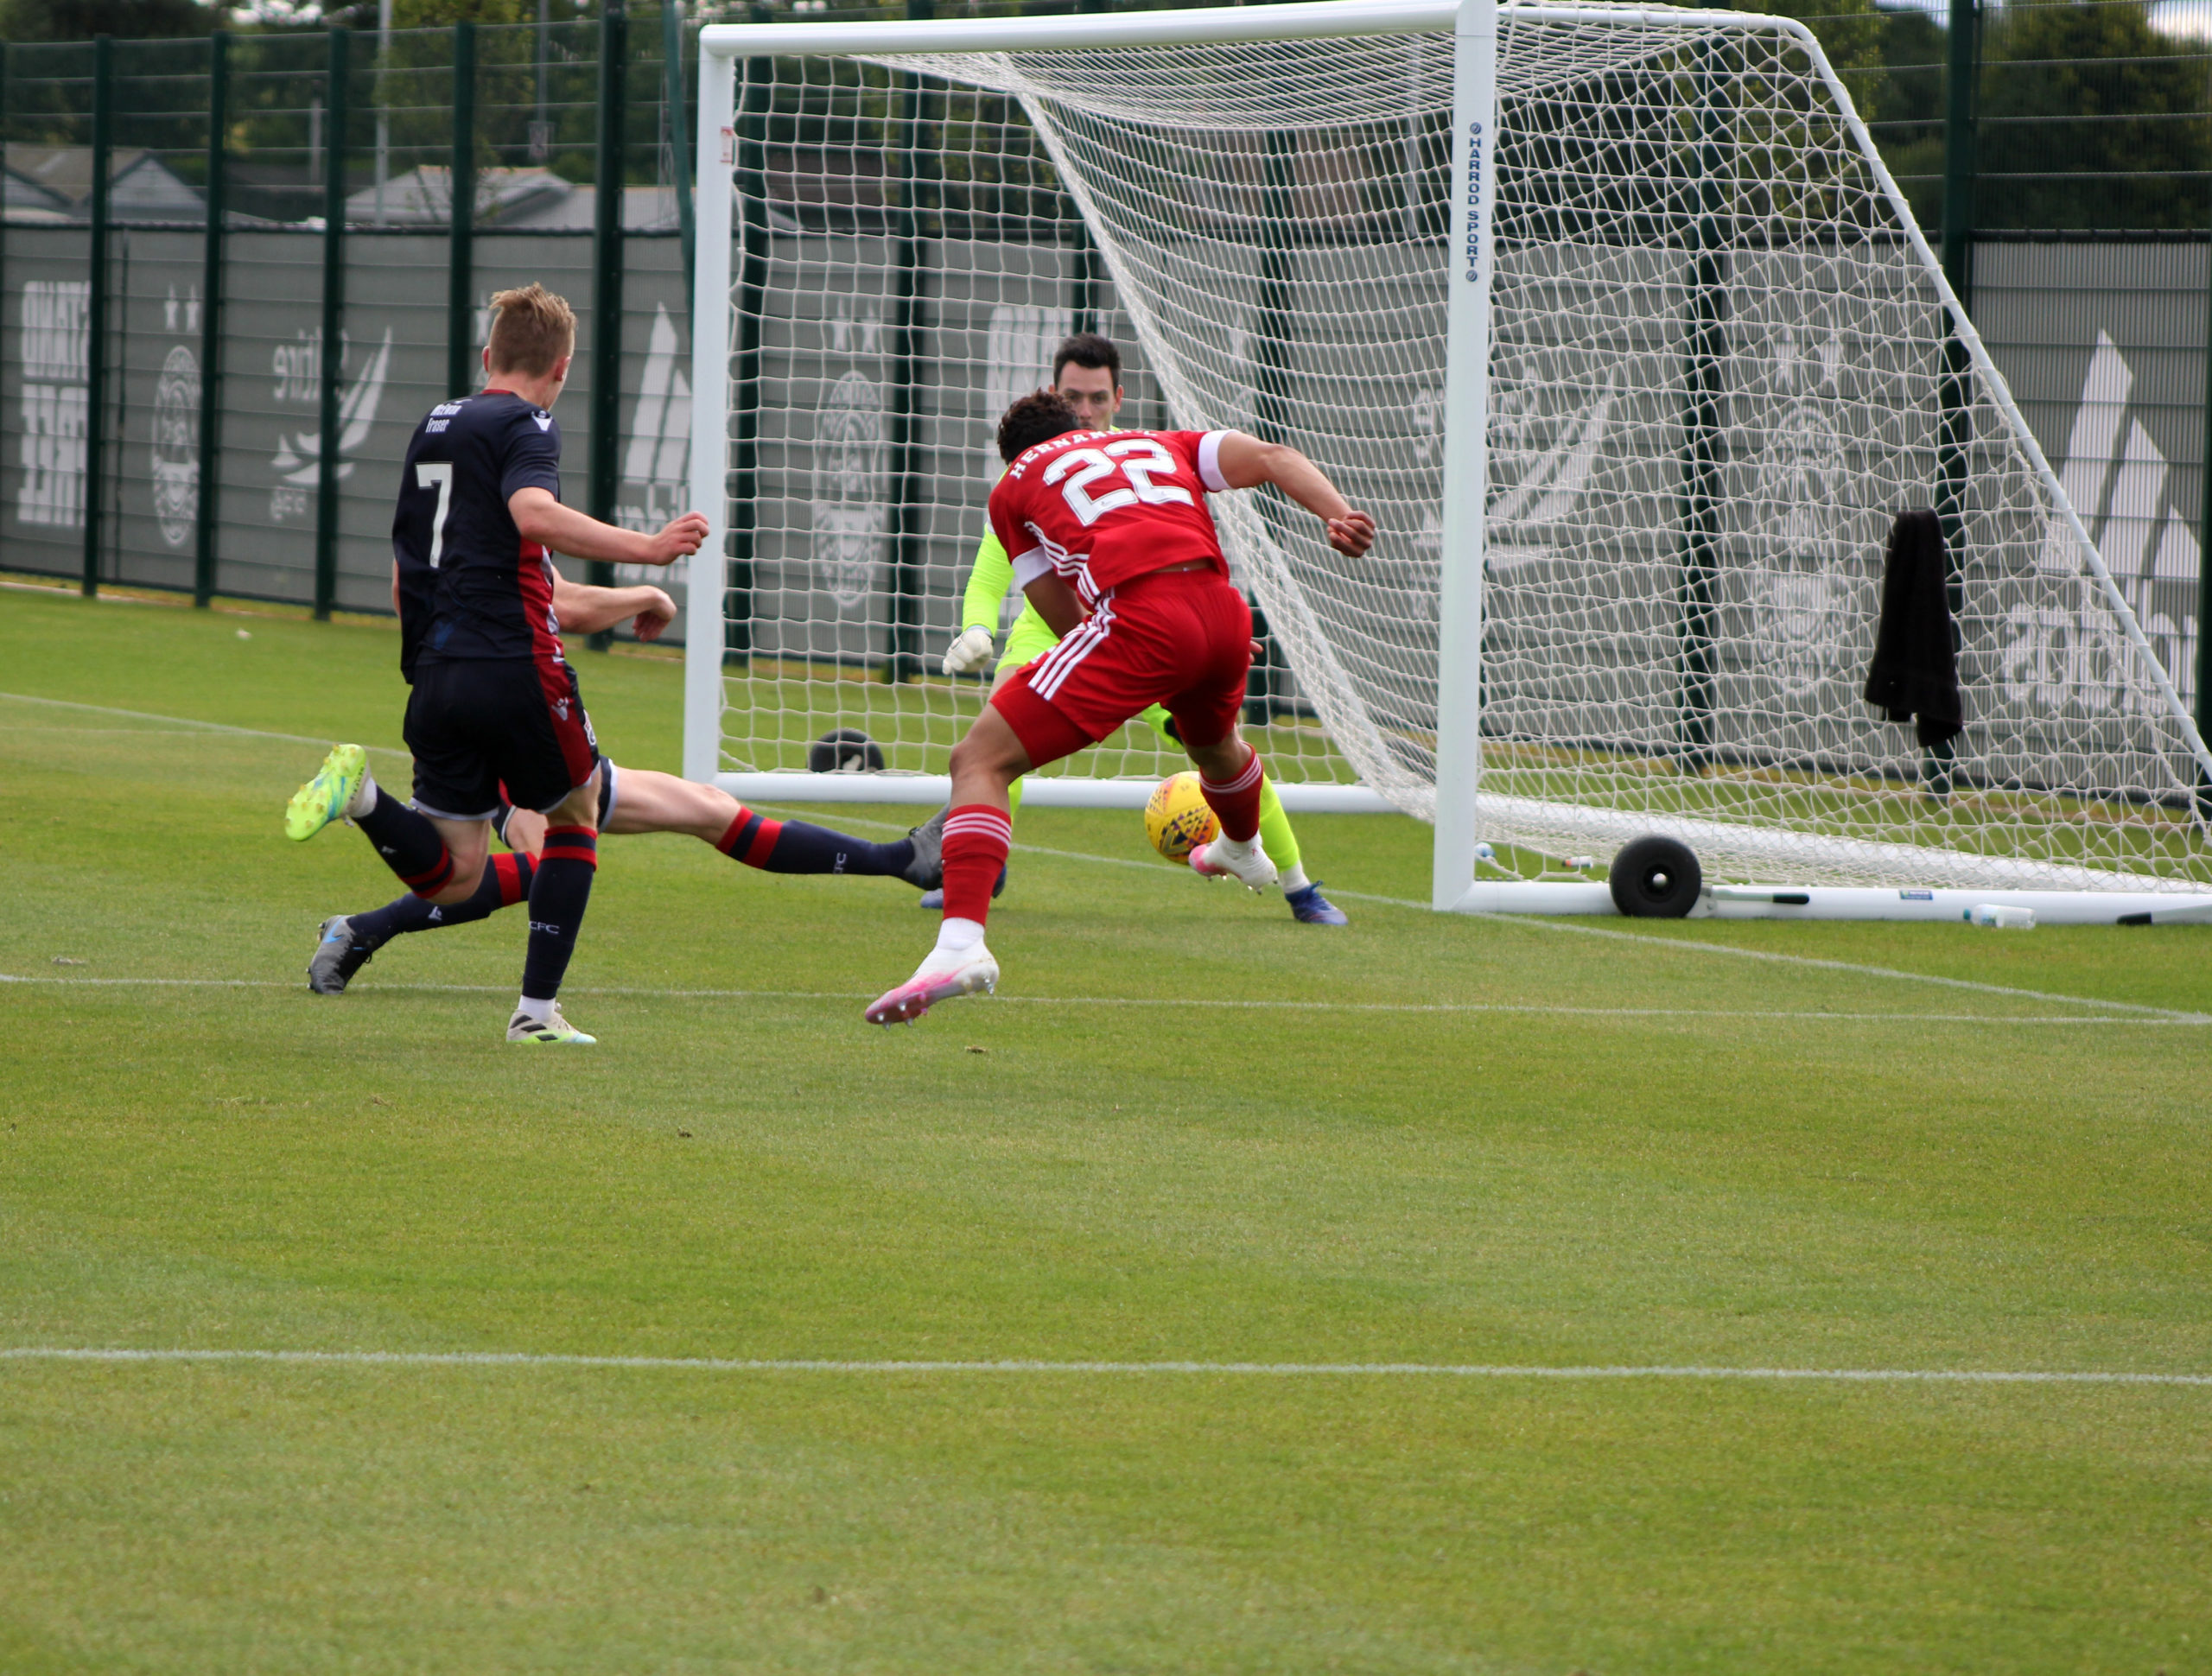 Aberdeen and Ross County's friendly on Saturday.